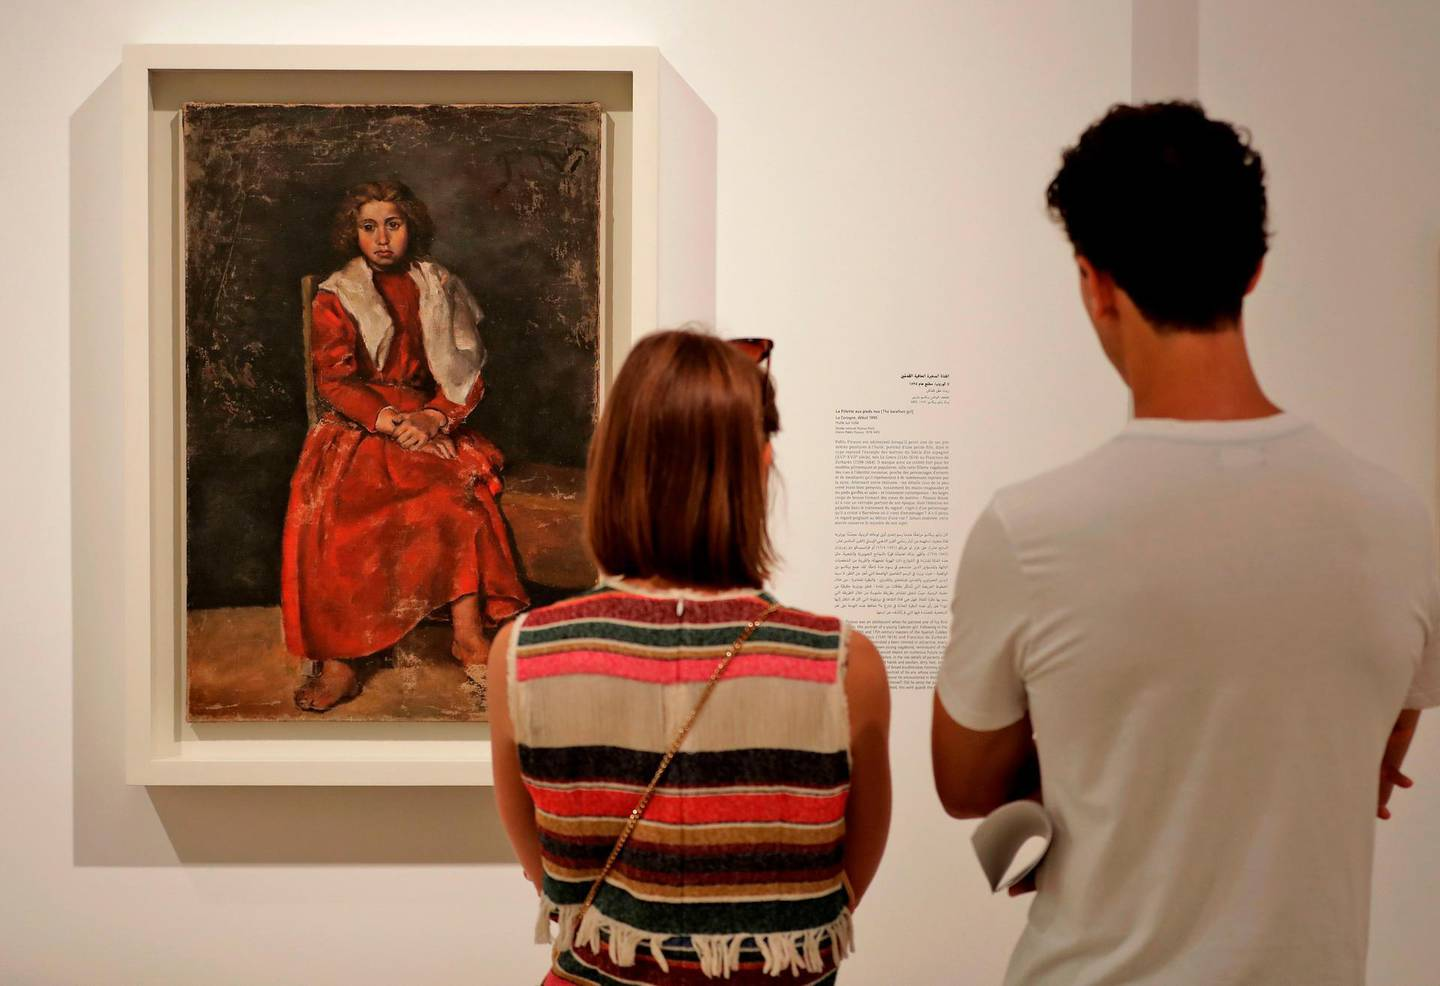 """Visitors observe the artwork """"The Barefoot Girl"""" (1895) by Spanish artist Pablo Picasso  displayed at the Sursock Museum in the Lebanese capital Beirut on September 27, 2019. Lebanon launched its first exhibition of late Spanish artist Pablo Picasso's works this month with more than 20 works centred around the theme of family, organisers said. The exhibition will run until January next year.  / AFP / JOSEPH EID"""